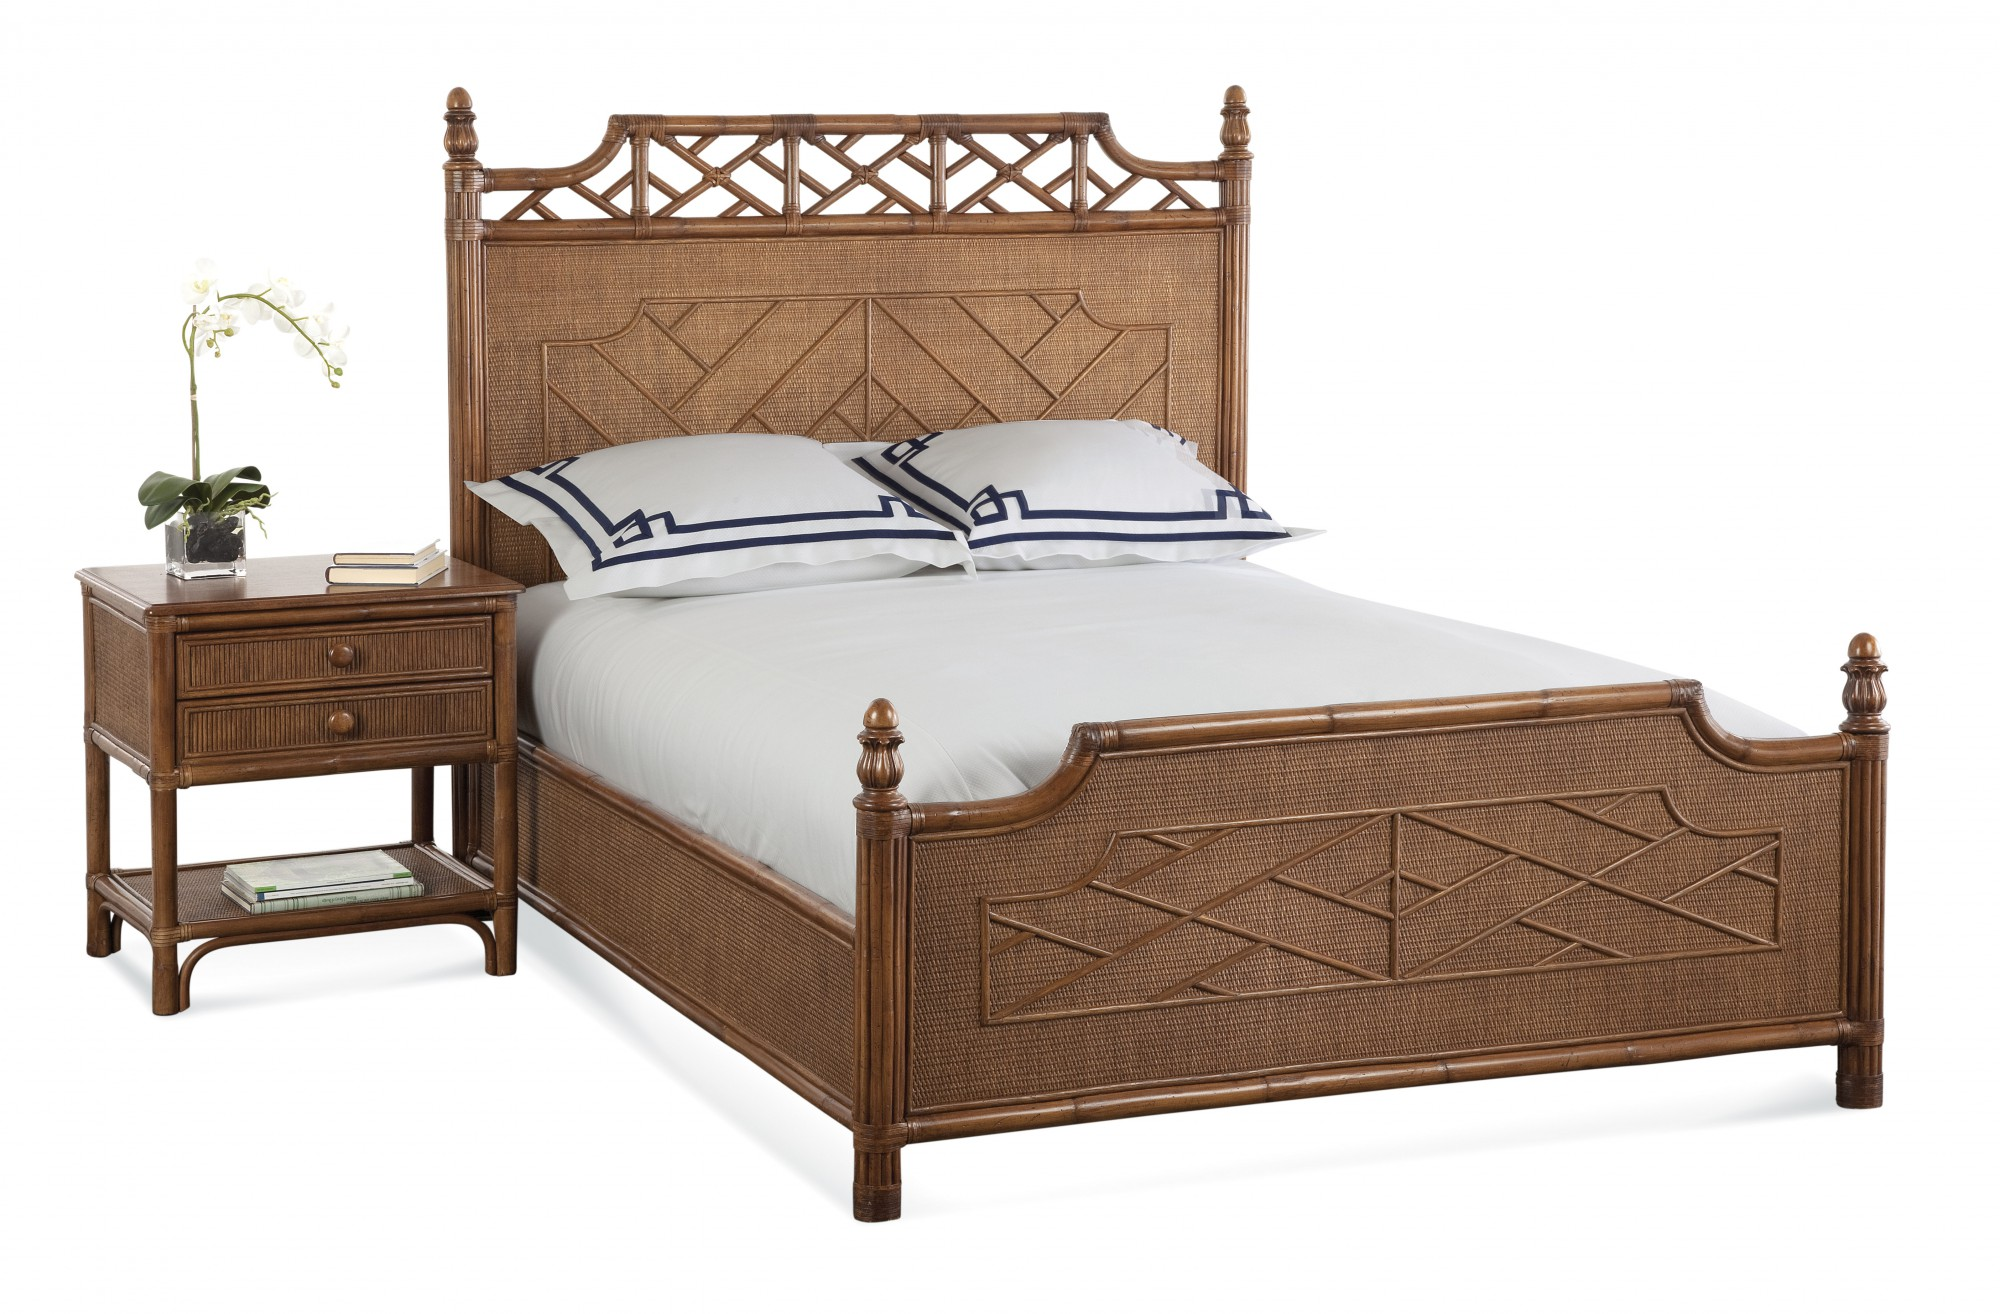 Chippendale bed by Braxton Culler